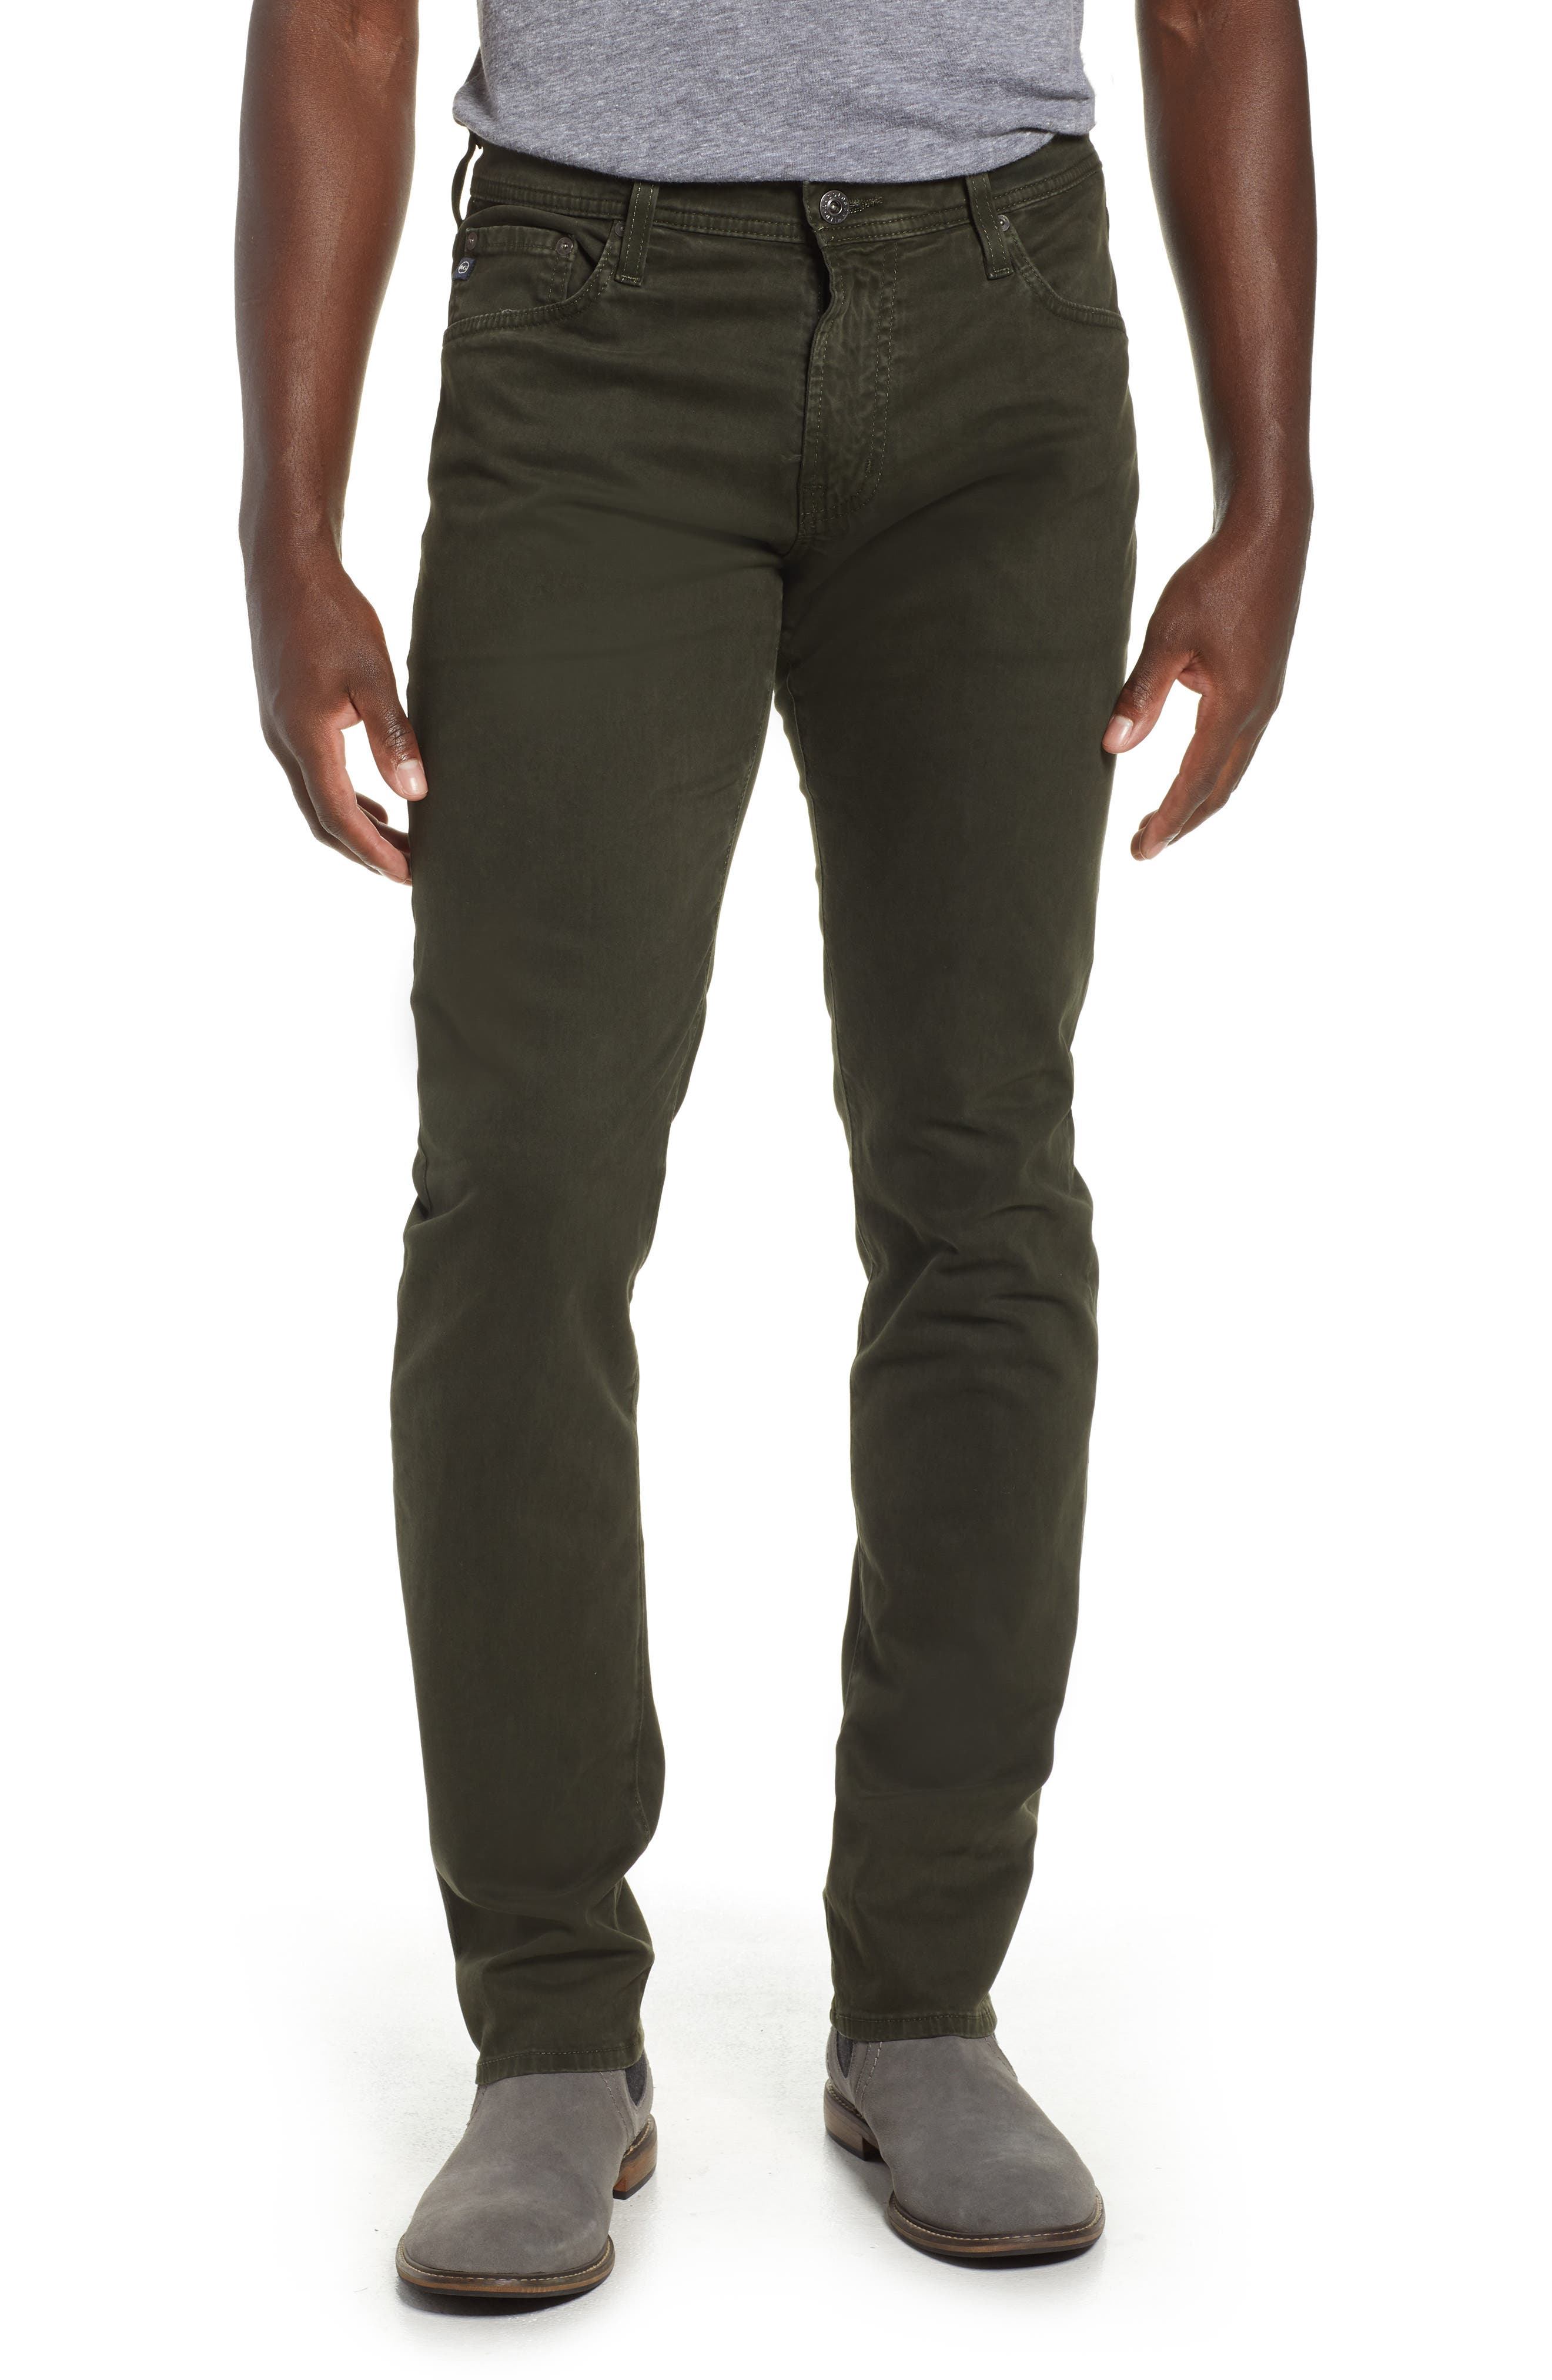 Tellis SUD Modern Slim Stretch Twill Pants,                         Main,                         color, SULFUR OAK GROVE